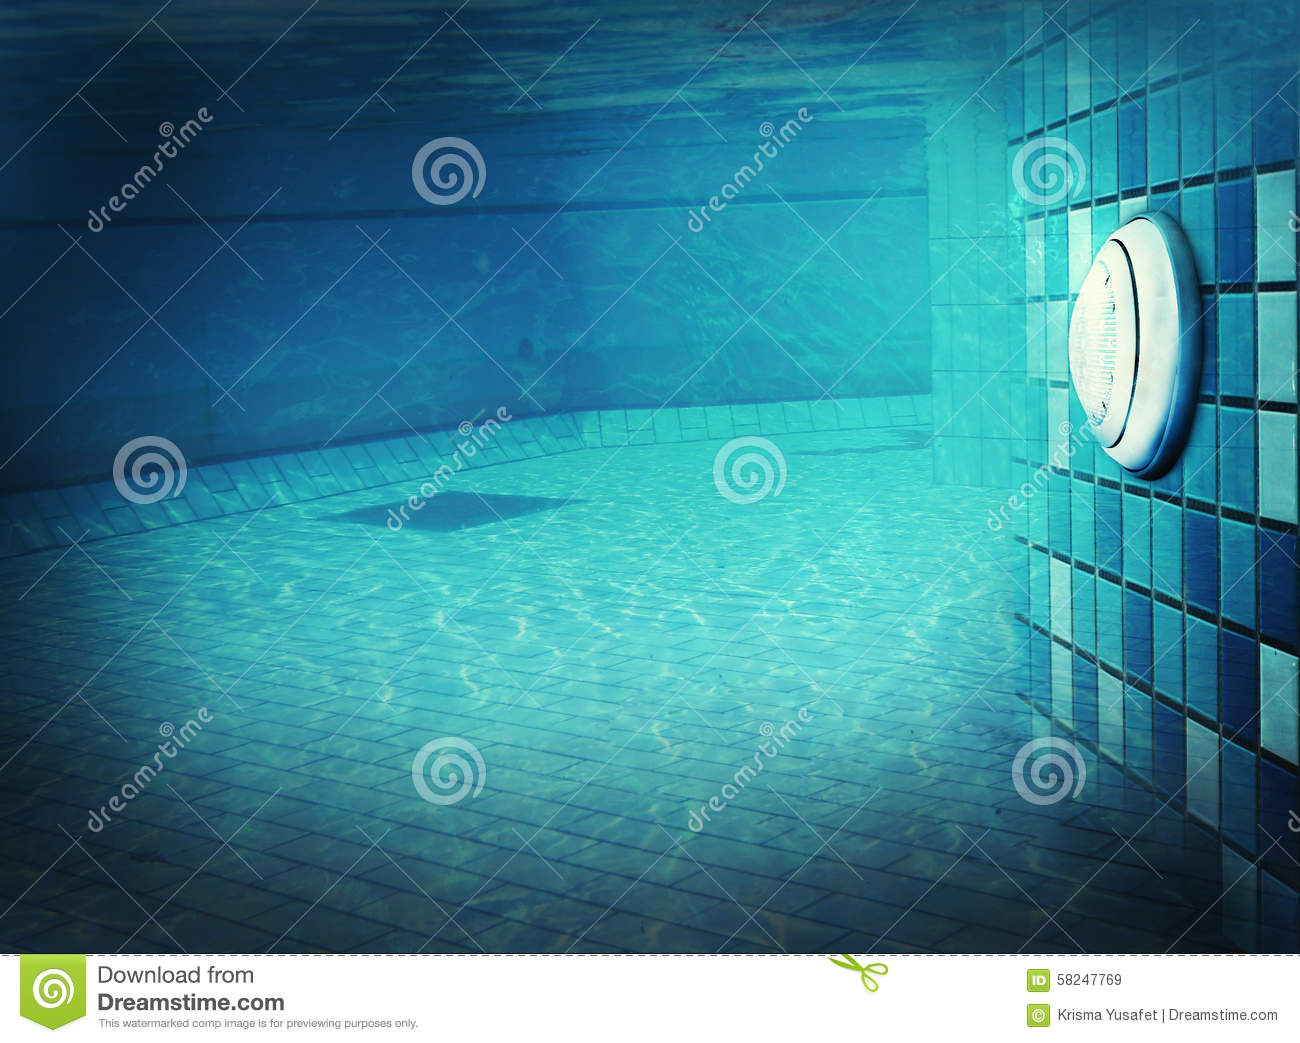 Lumi re de piscine sous l 39 eau photo stock image 58247769 for Piscine xs prix